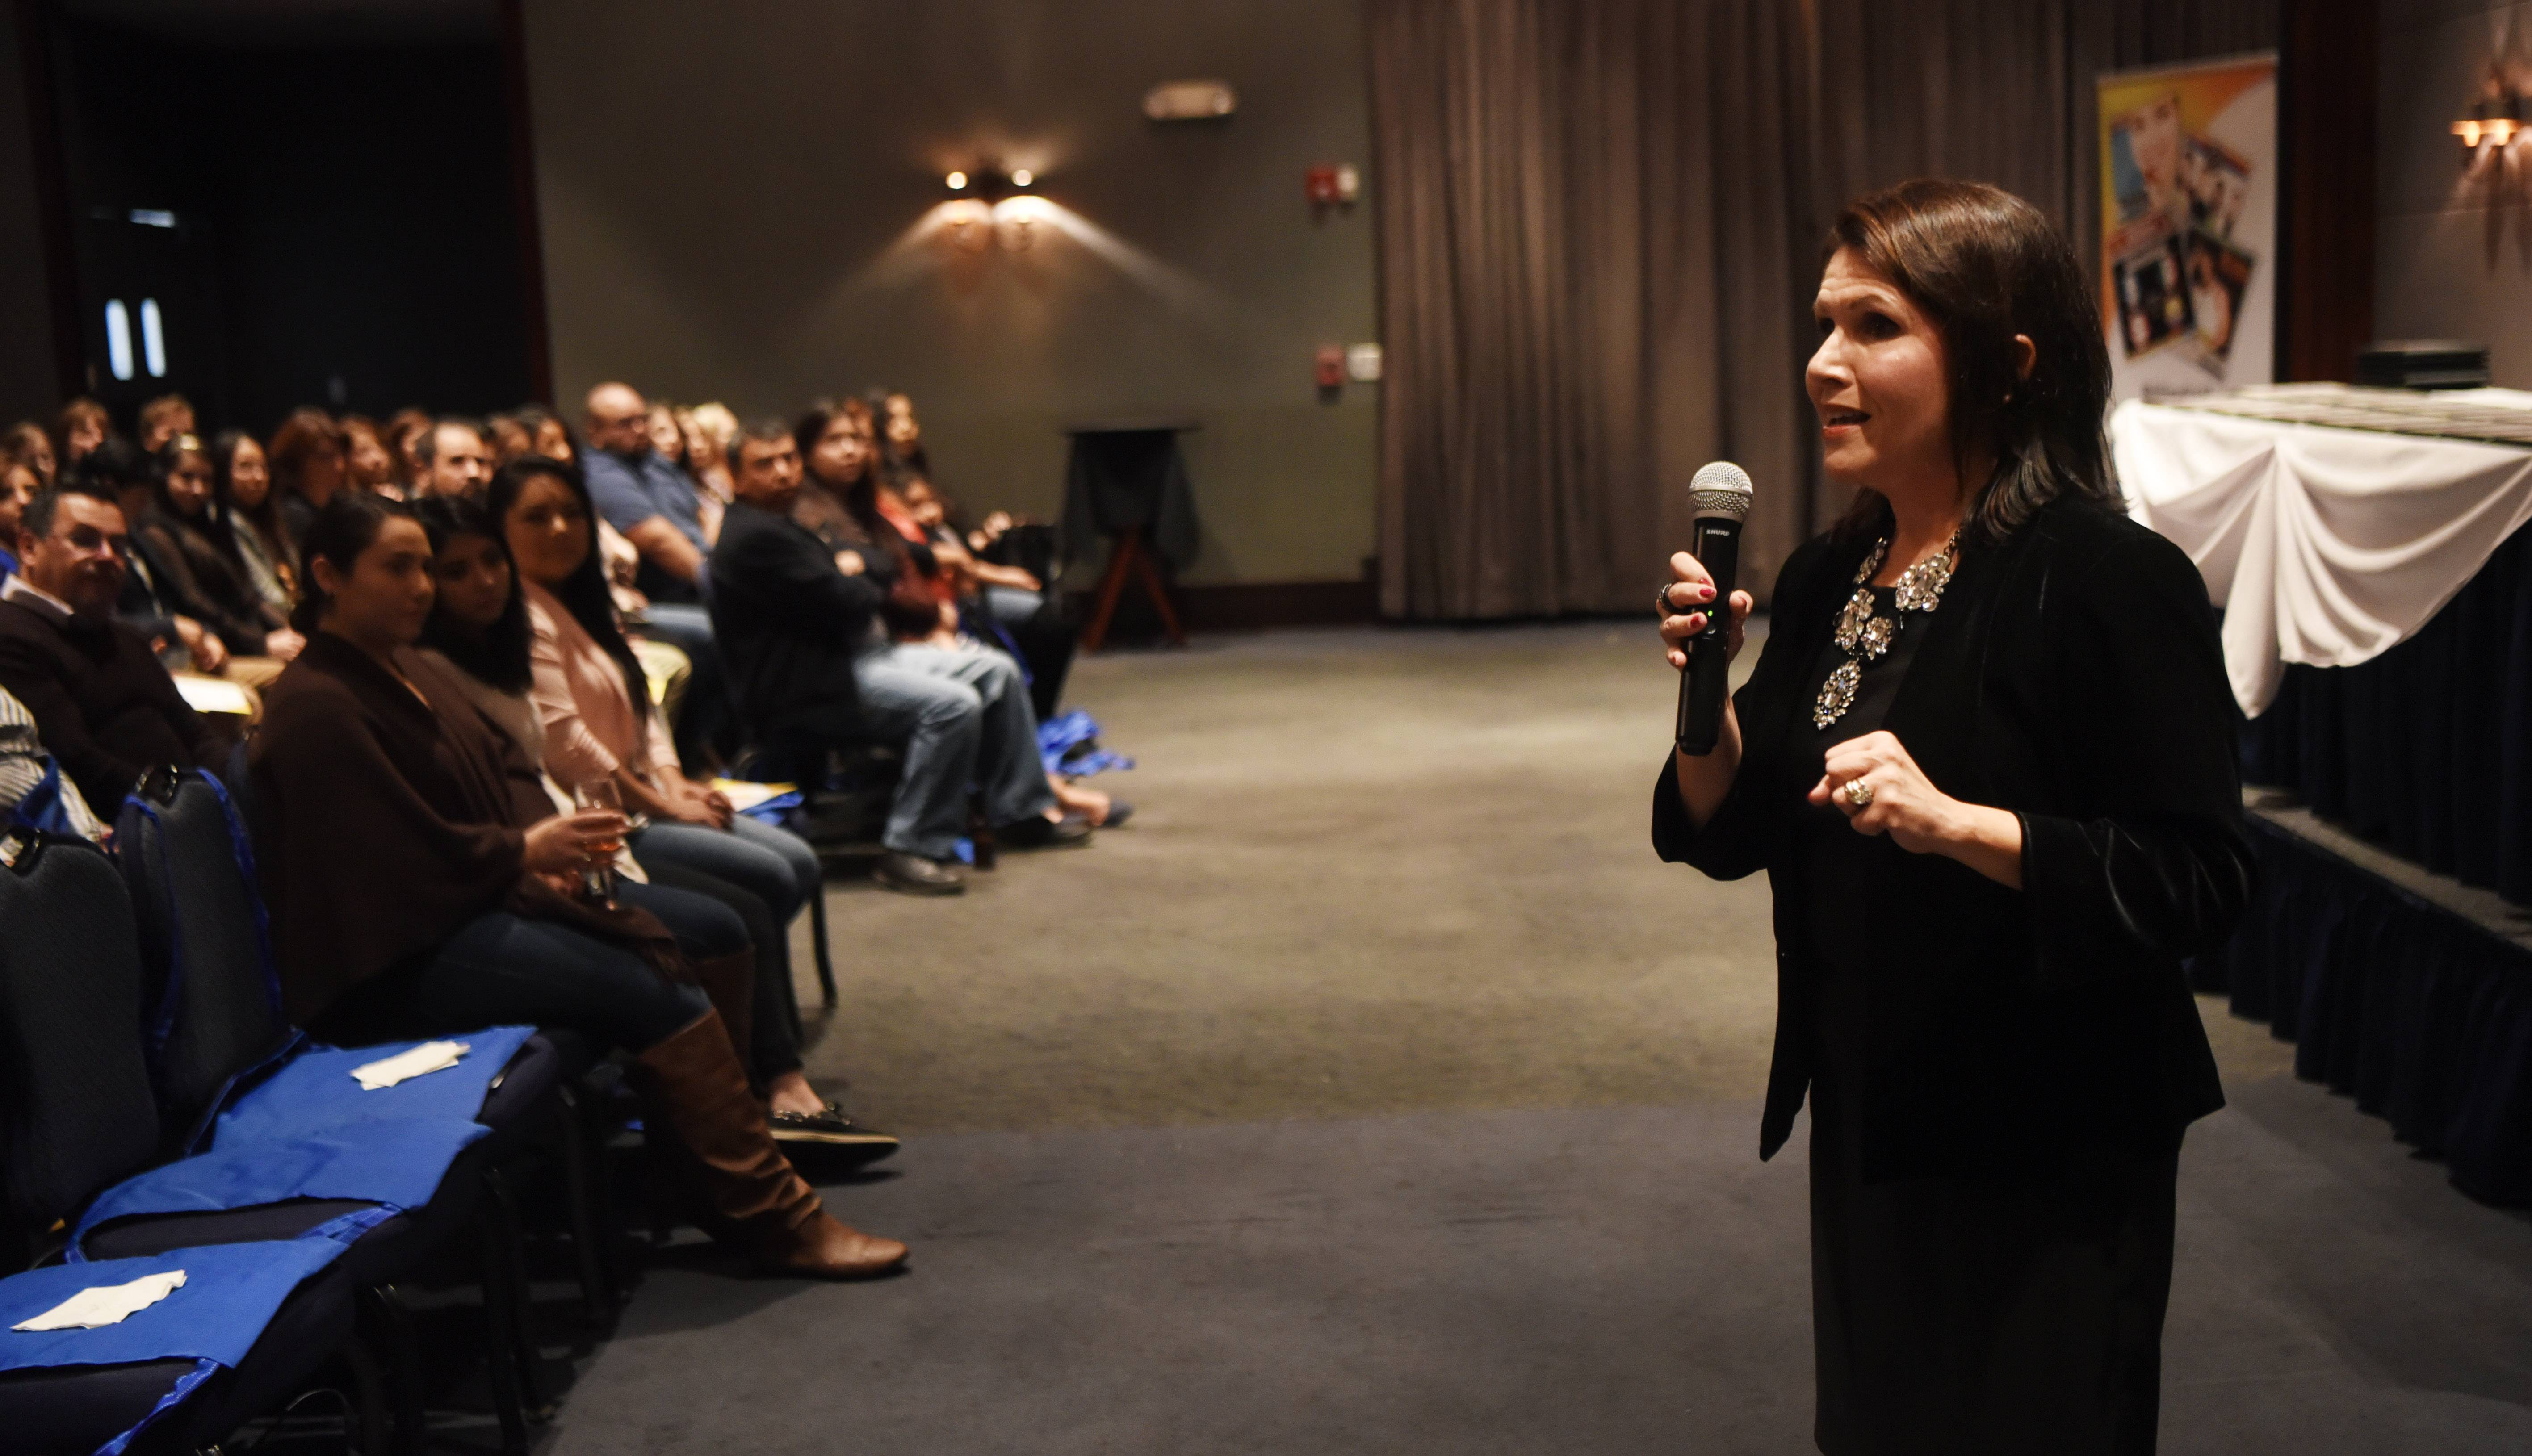 Lt. Gov. Evelyn Sanguinetti speaks during the Reflejos Reflecting Excellence Awards event Wednesday at Stonegate Banquets in Hoffman Estates.